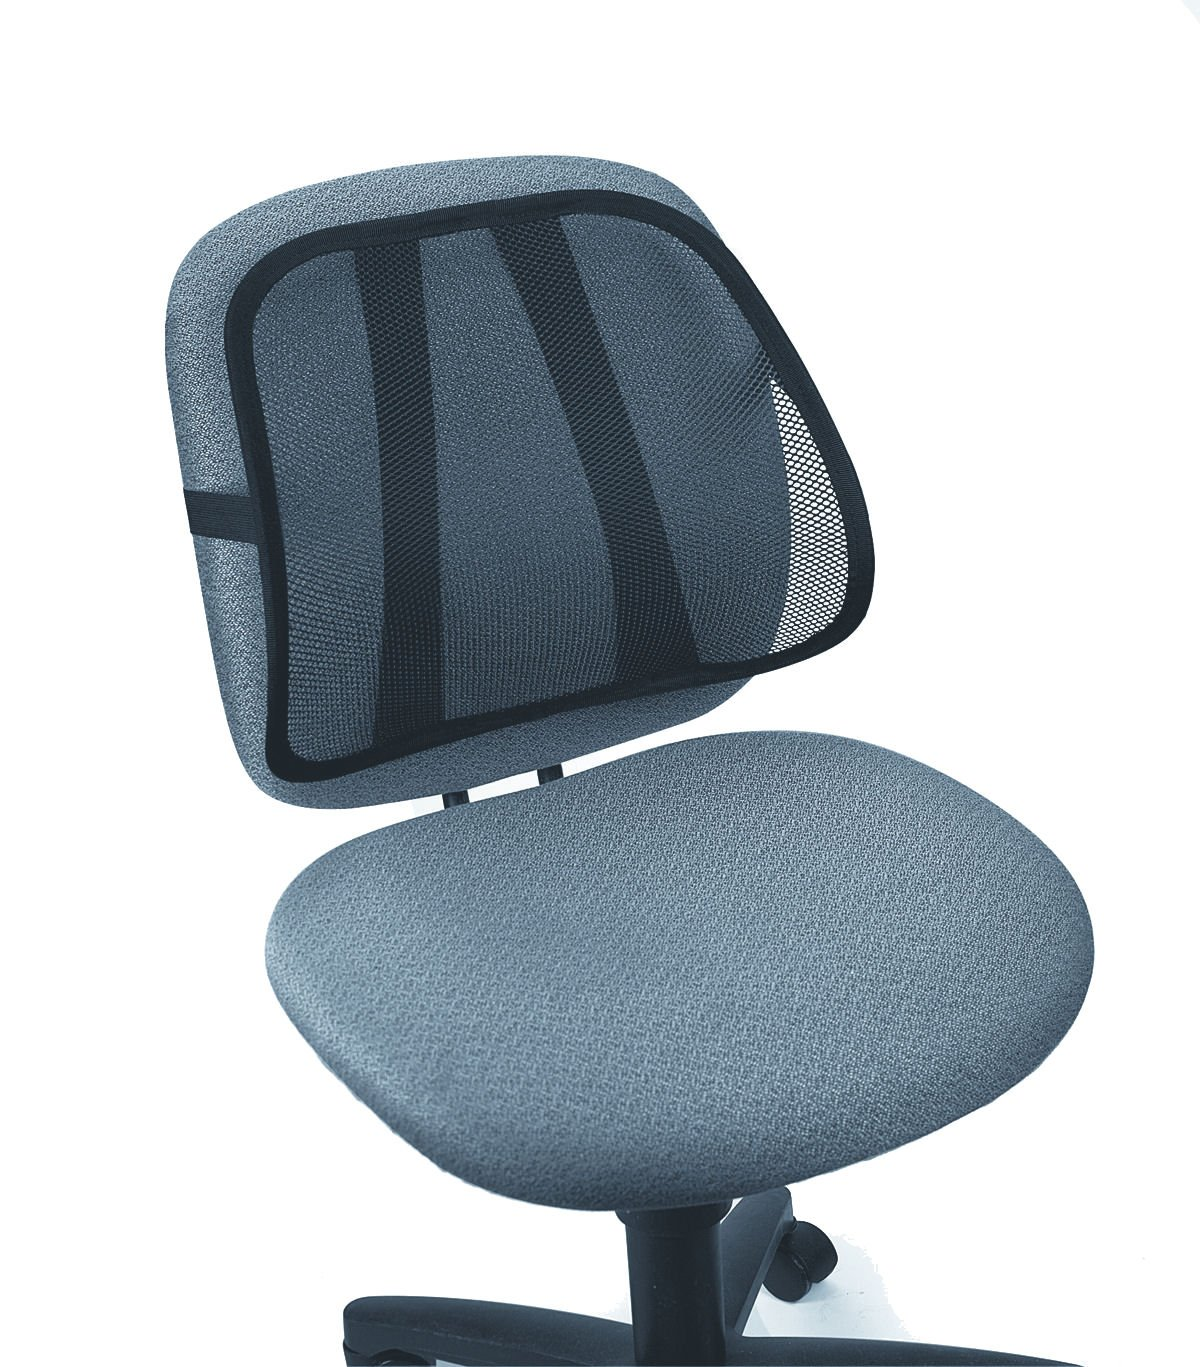 Attirant Fellowes Office Suites Mesh Back Support, Black: Amazon.ca: Office Products